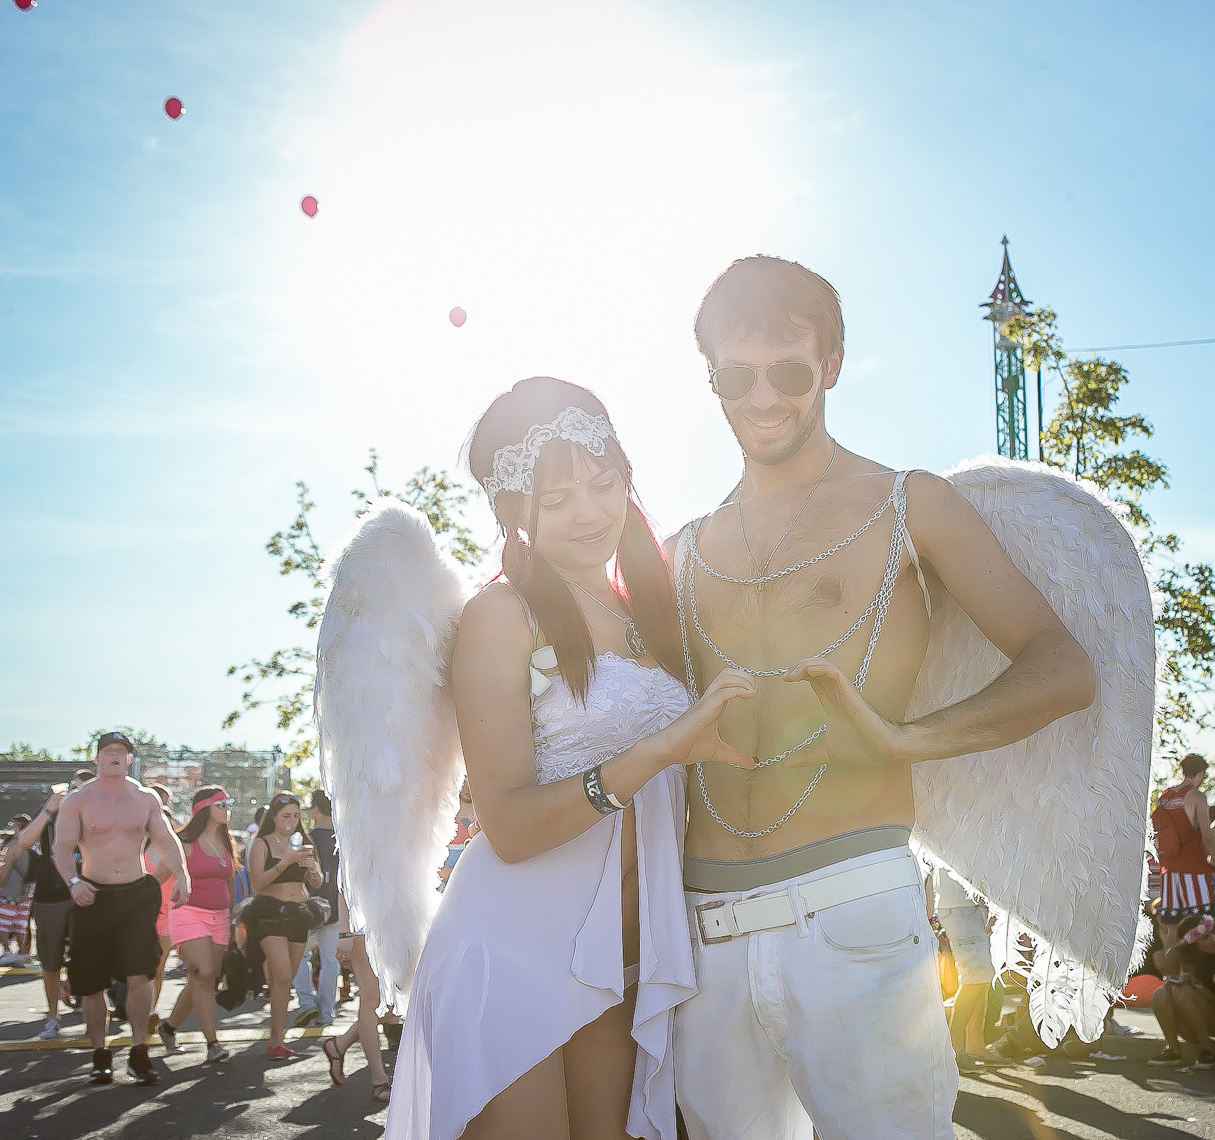 Electric Daisy Carnival by lifestyle and event photographer Deborah Lowery